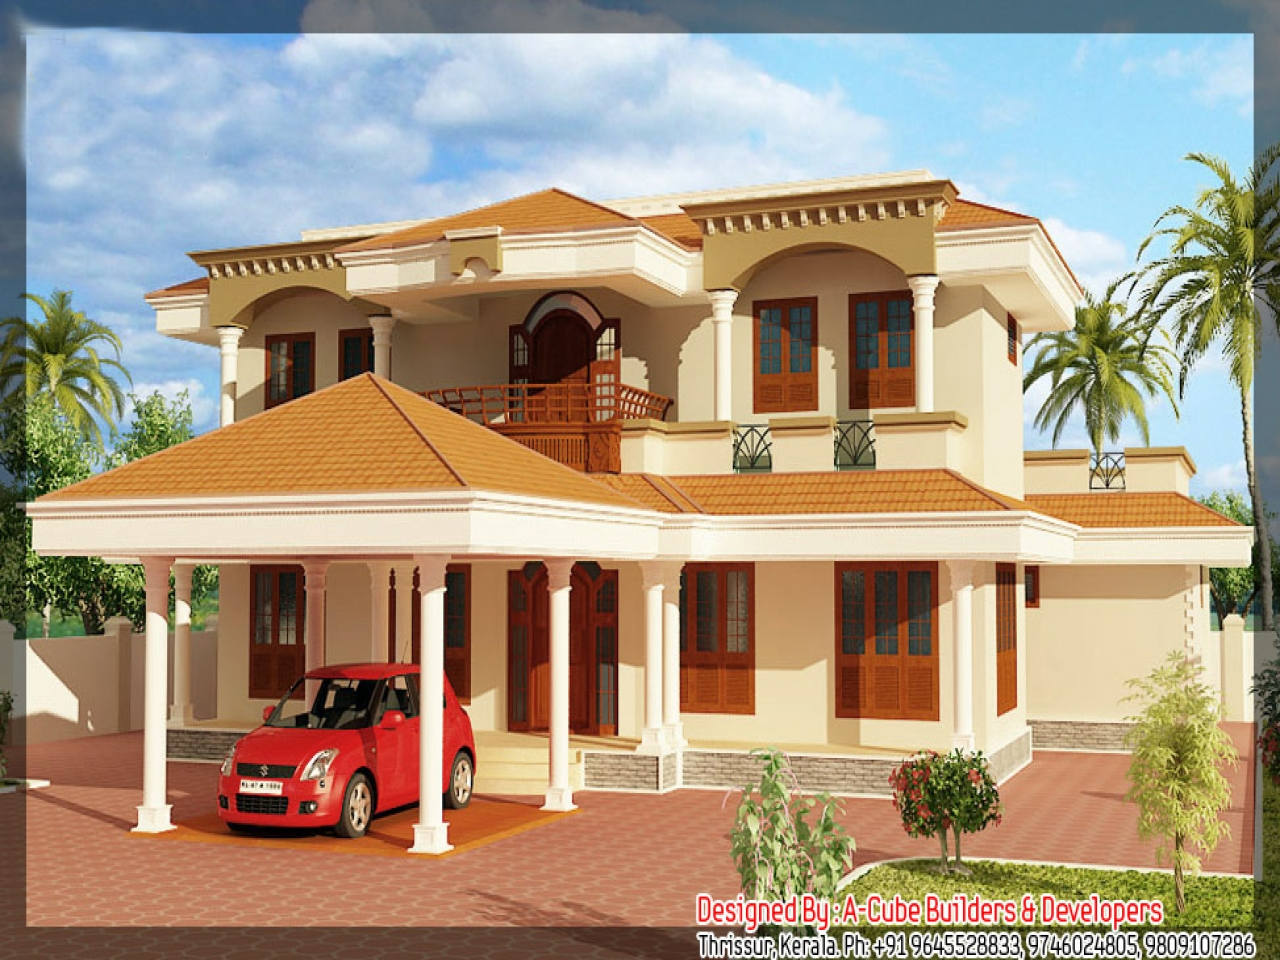 New model kerala house plans beautiful houses in kerala floor plan dream house New model house plan